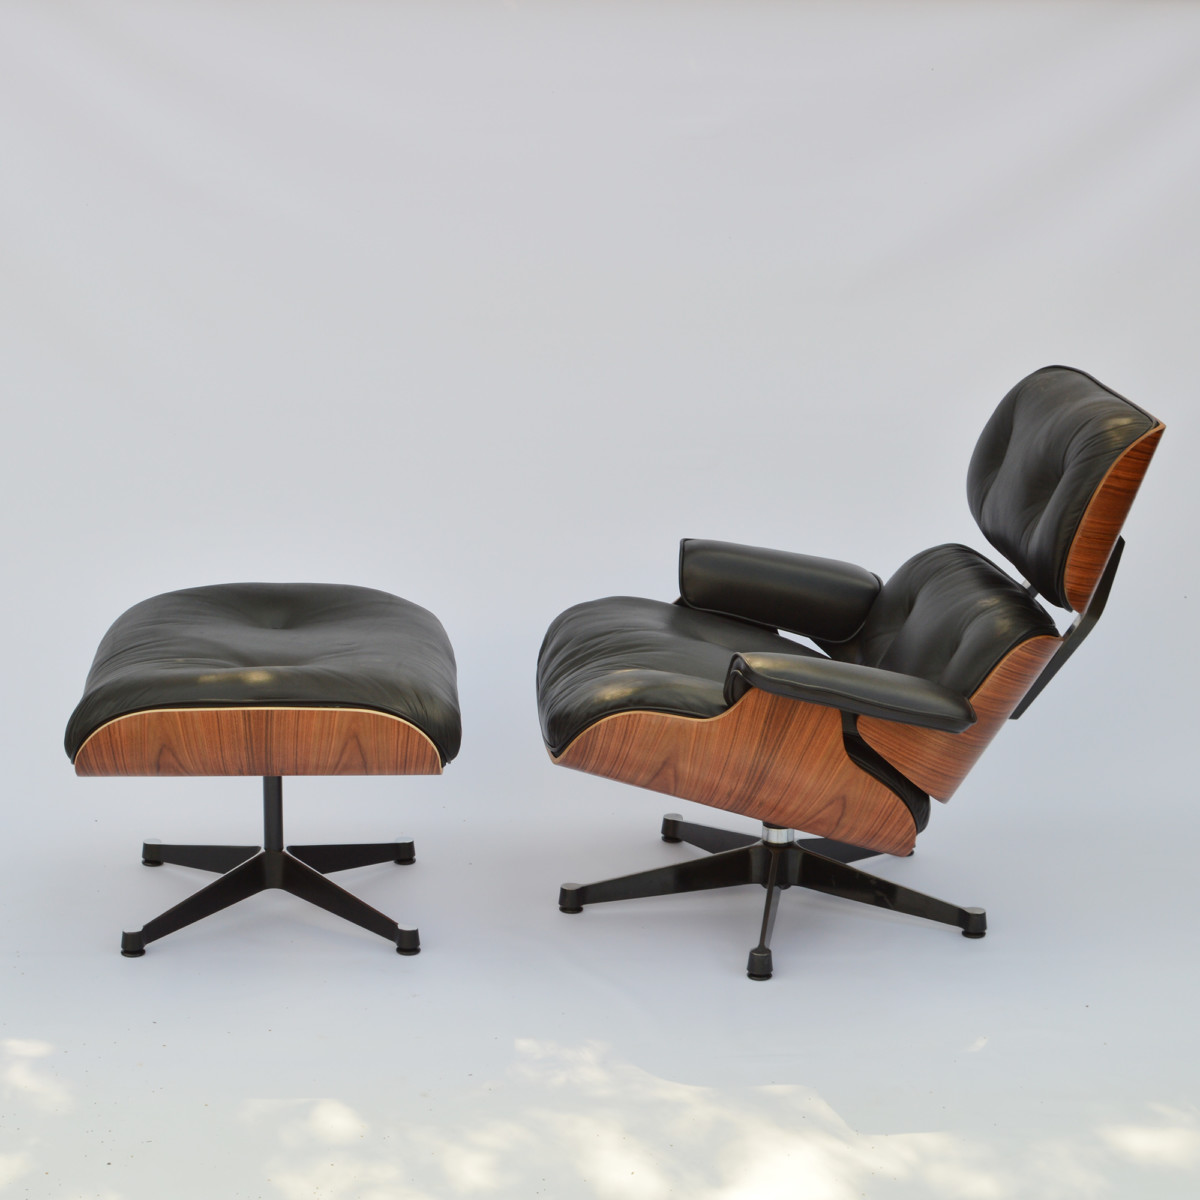 Lounge Sessel Eames Vintage Eames Lounge Chair Ottoman Palisander Herman Miller By Vitra Fehlbaum